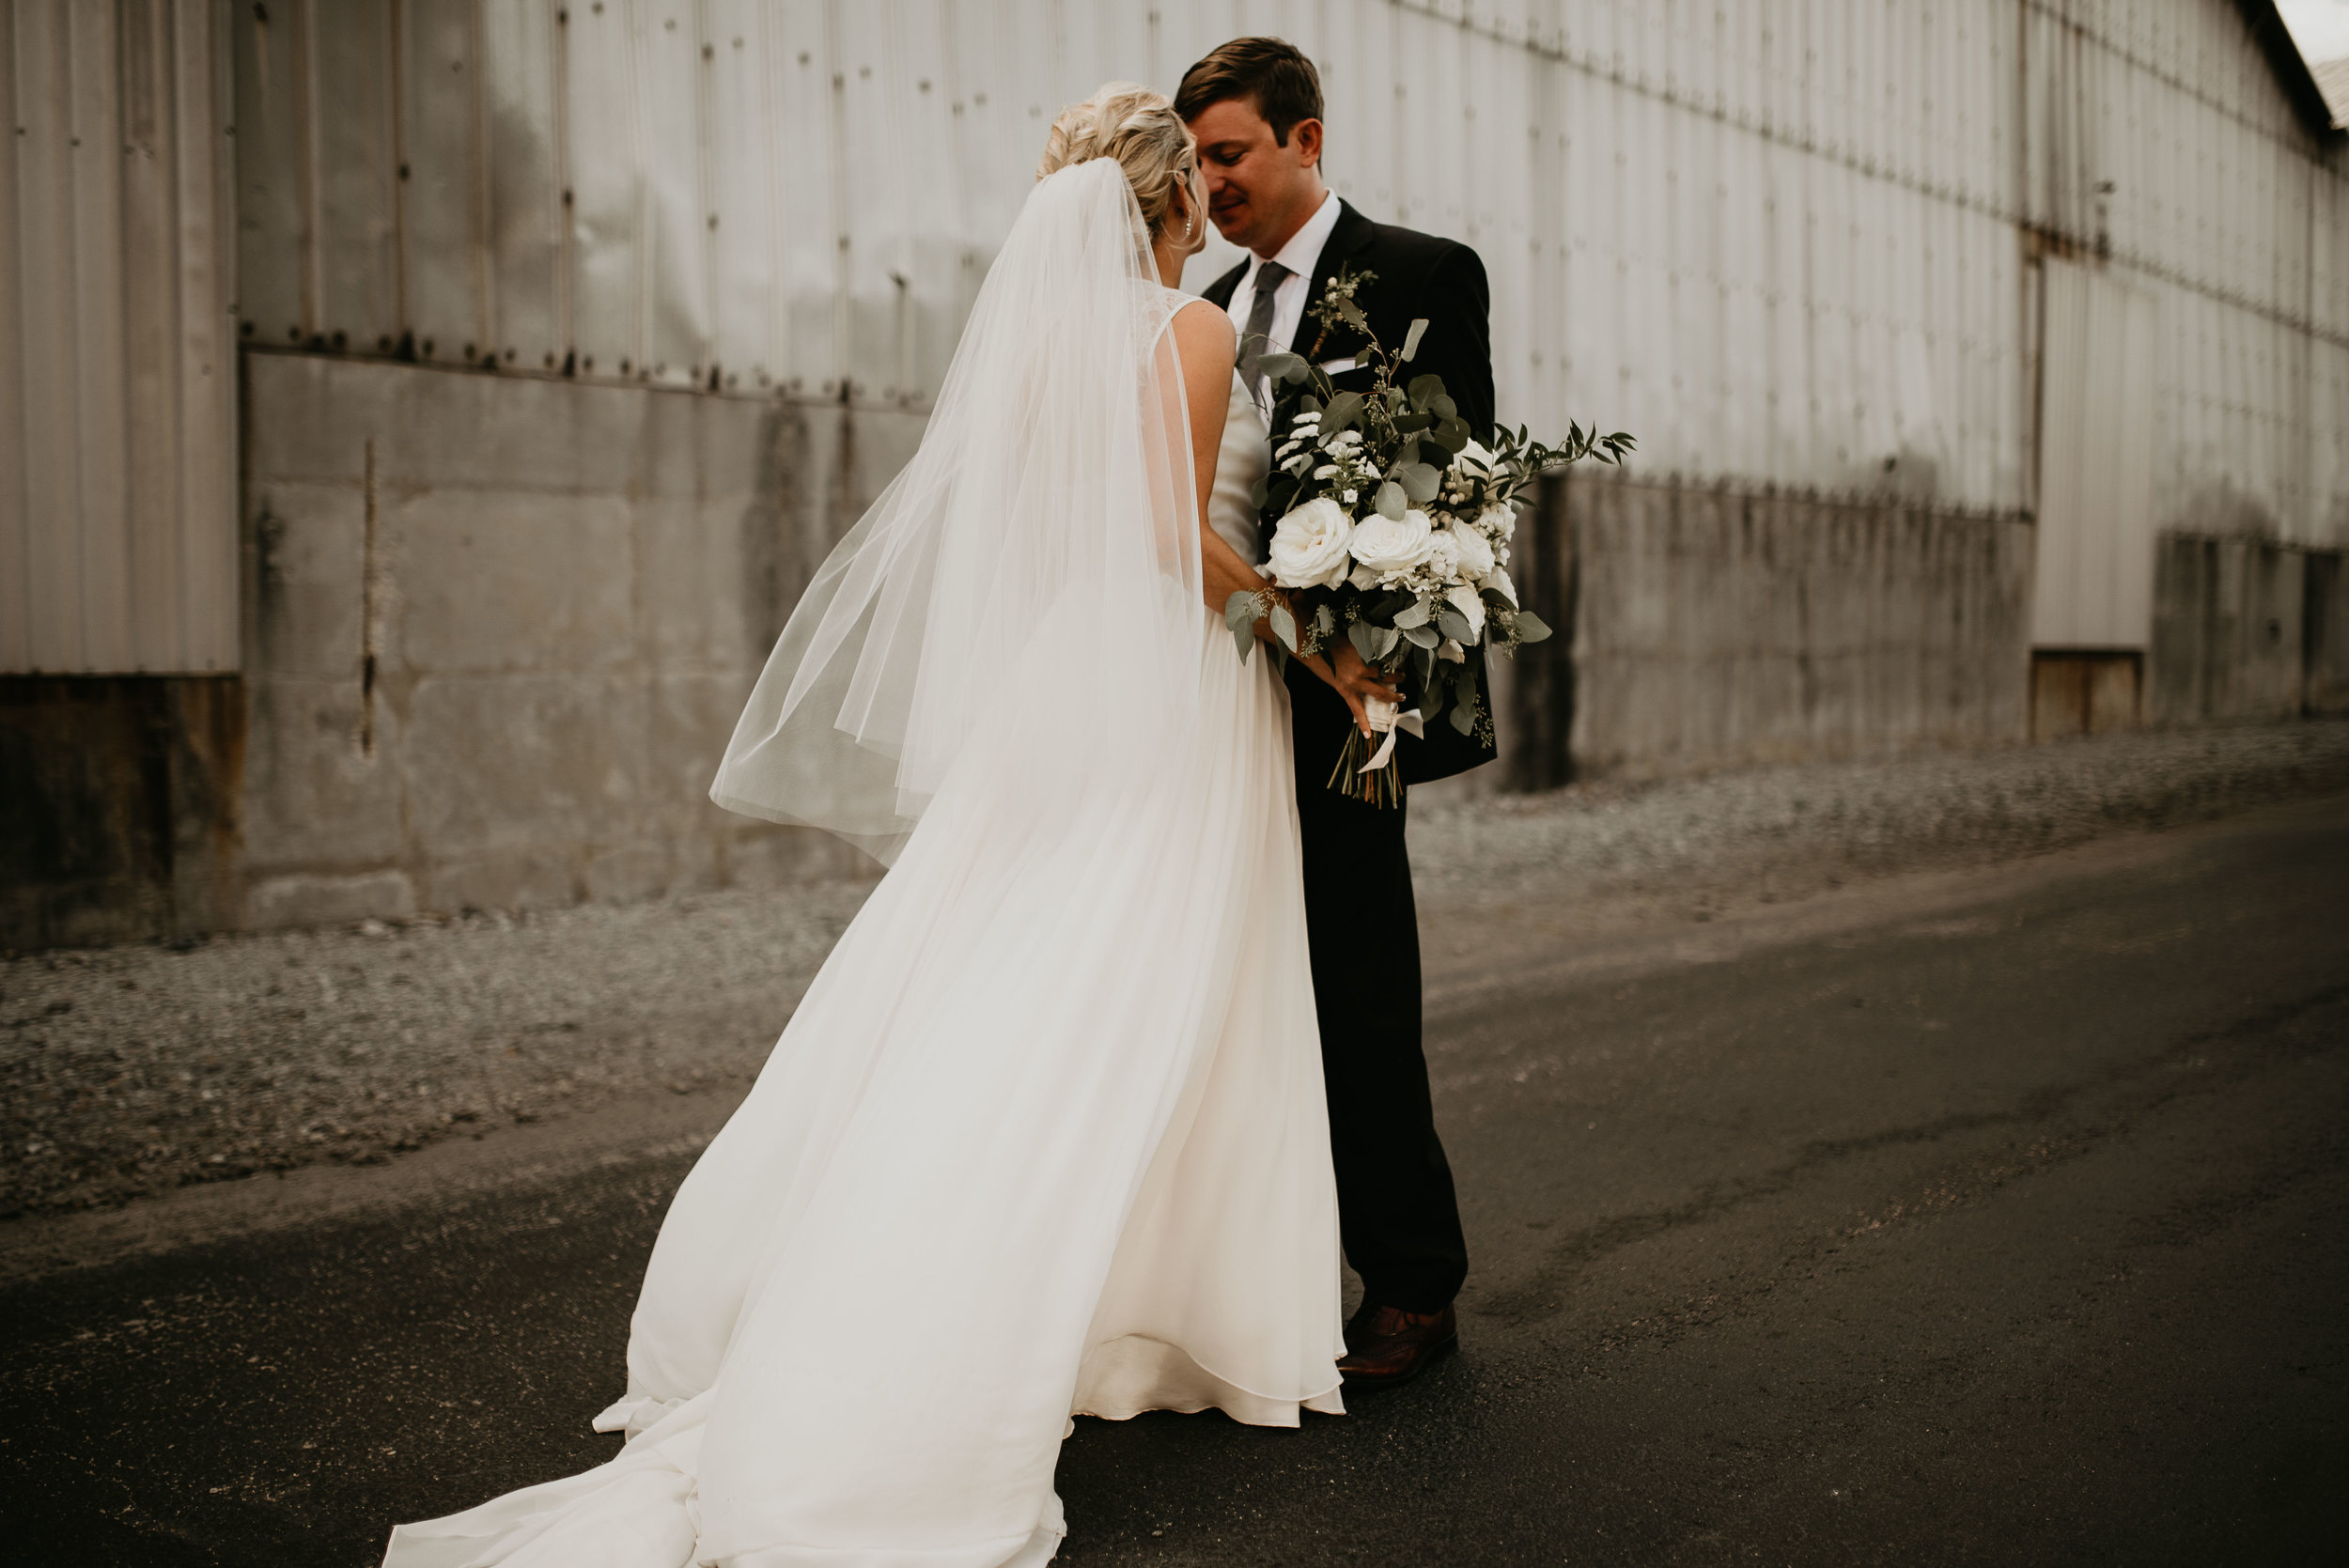 Bride and groom close together at The Foundry at Puritan Mill in Atlanta, GA